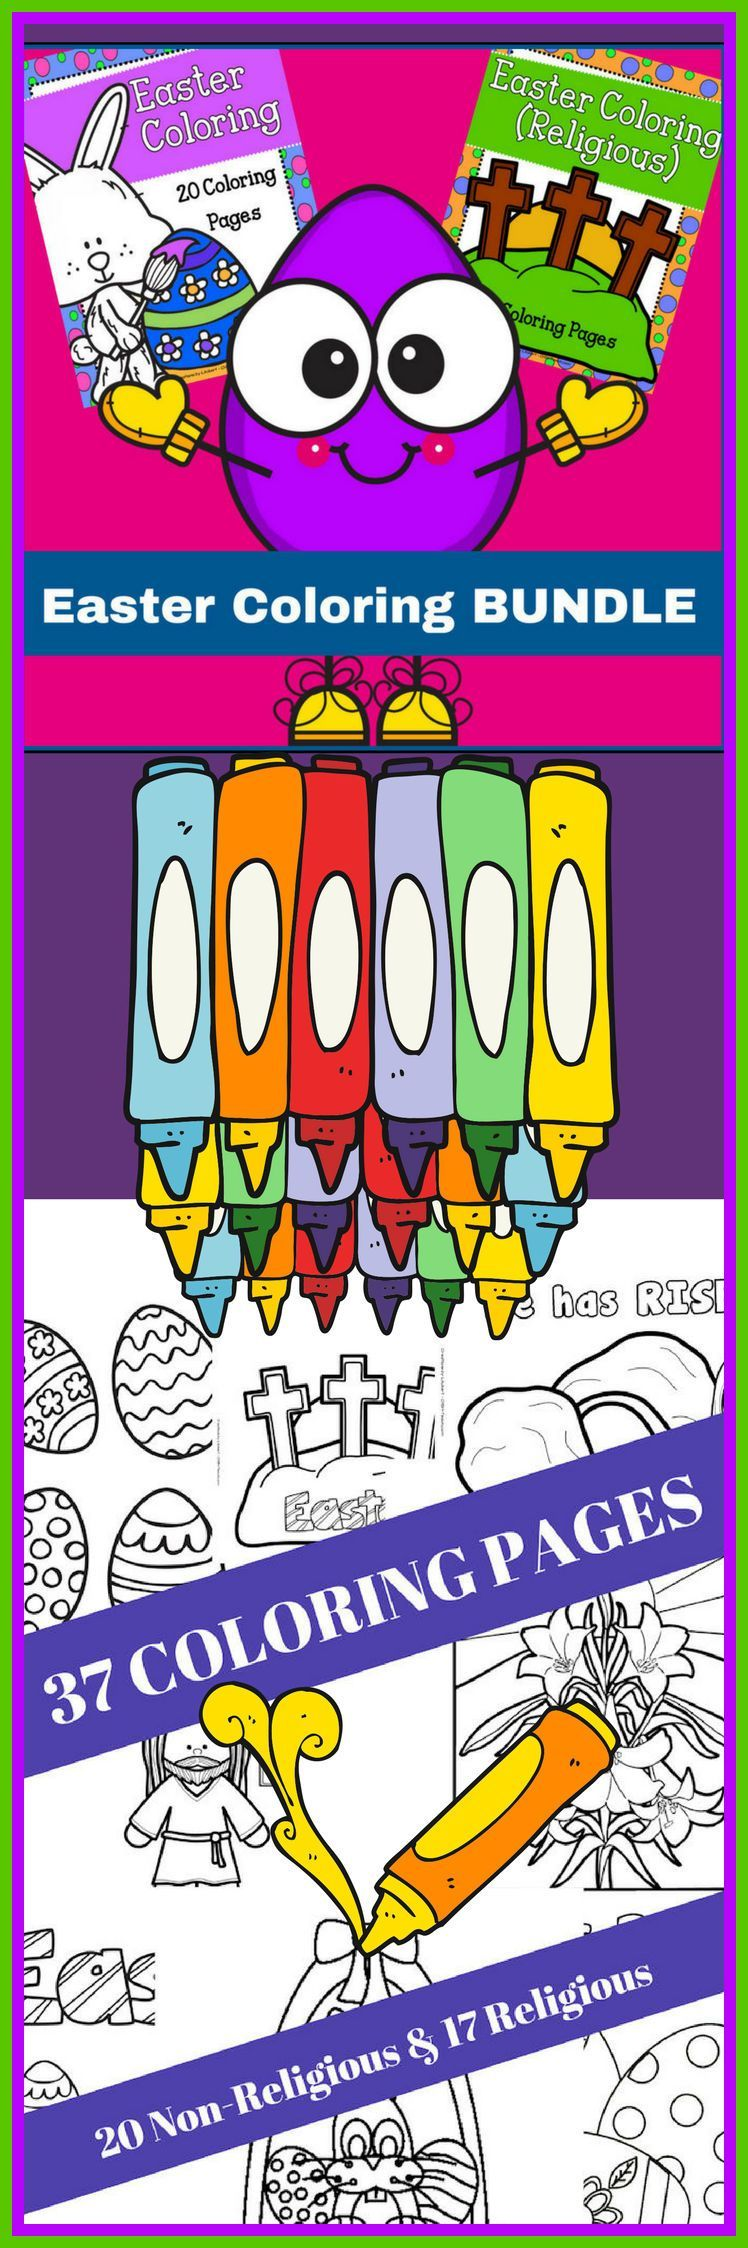 get 2 easter coloring books in easter coloring bundle the first 20 are all non religious coloring pages and include bunnies chicks and eggs and from my - Religious Coloring Books 2